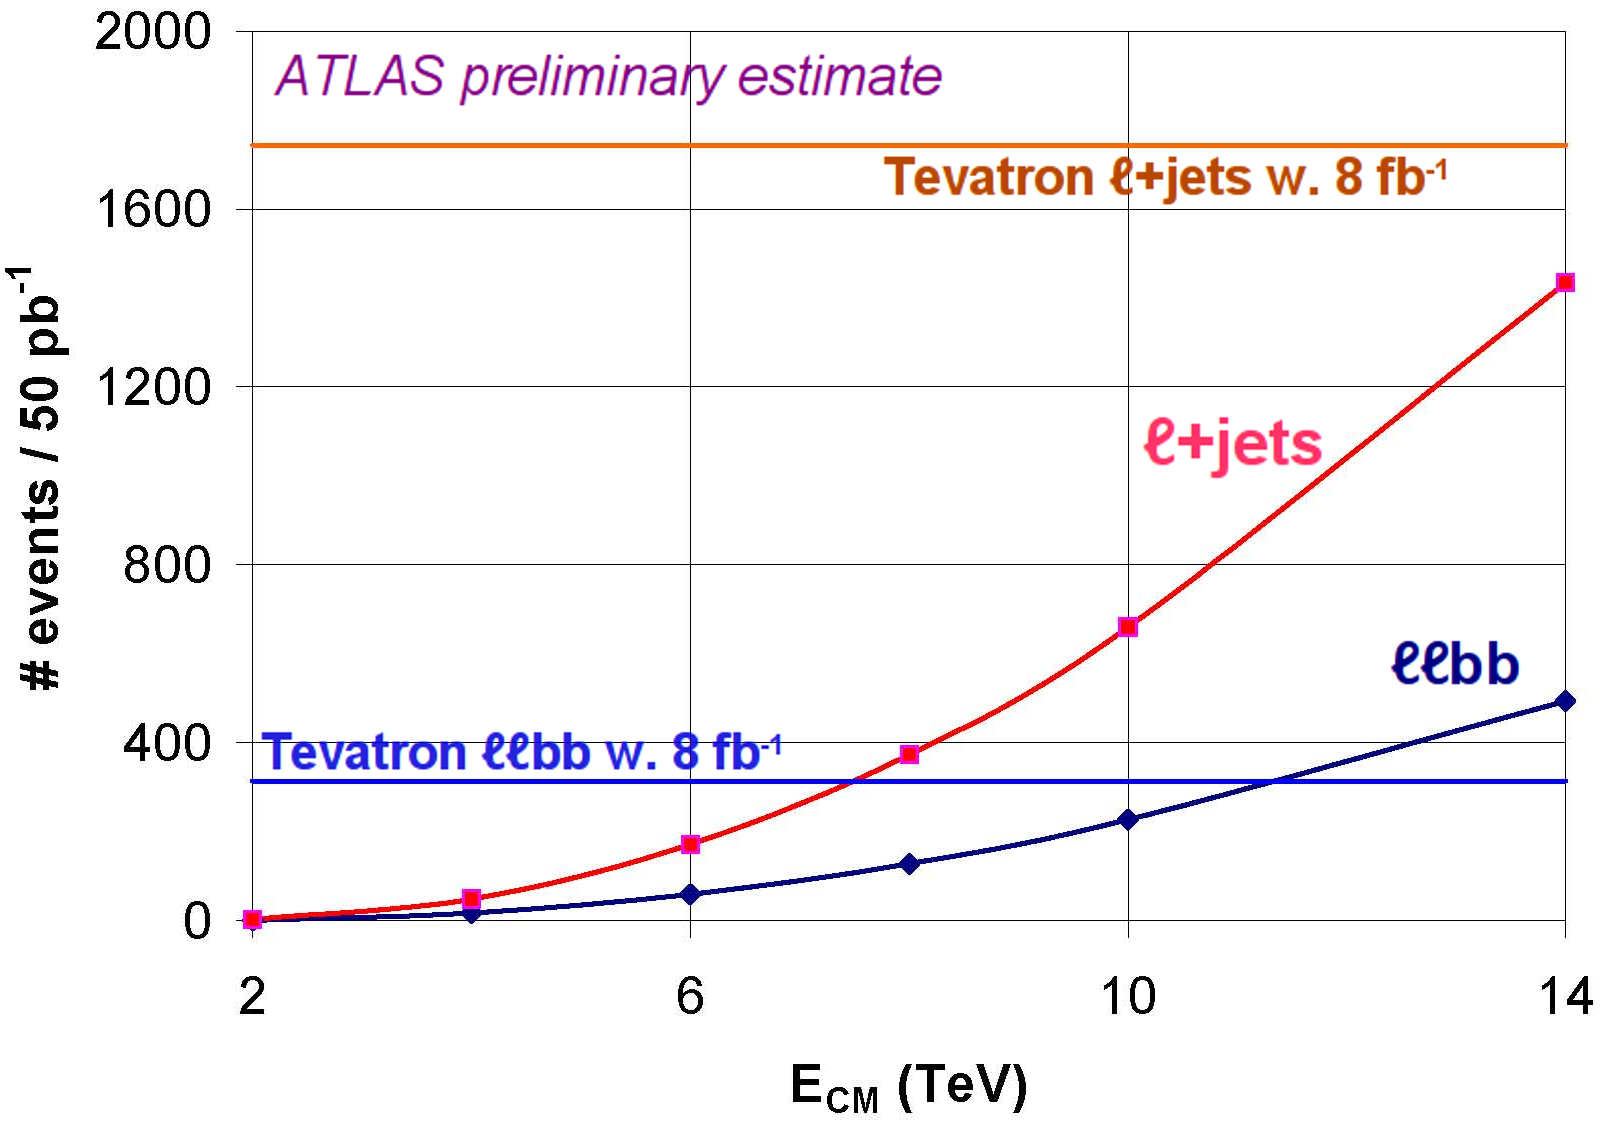 ttbar yield vs Ecm for 50pb-1